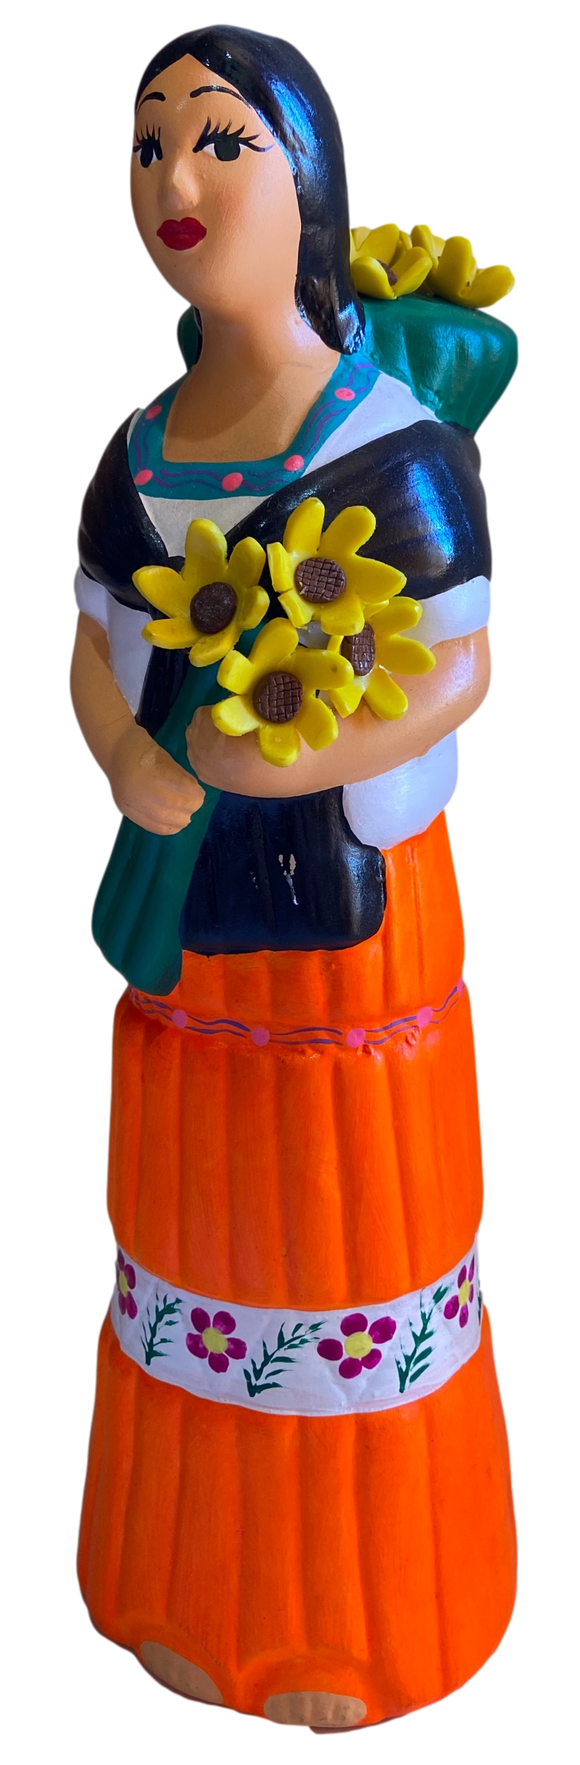 Tabletop Art Ceramic Figurine Lupita Gathering Sunflowers Handcrafted and Painted in Mexico 14